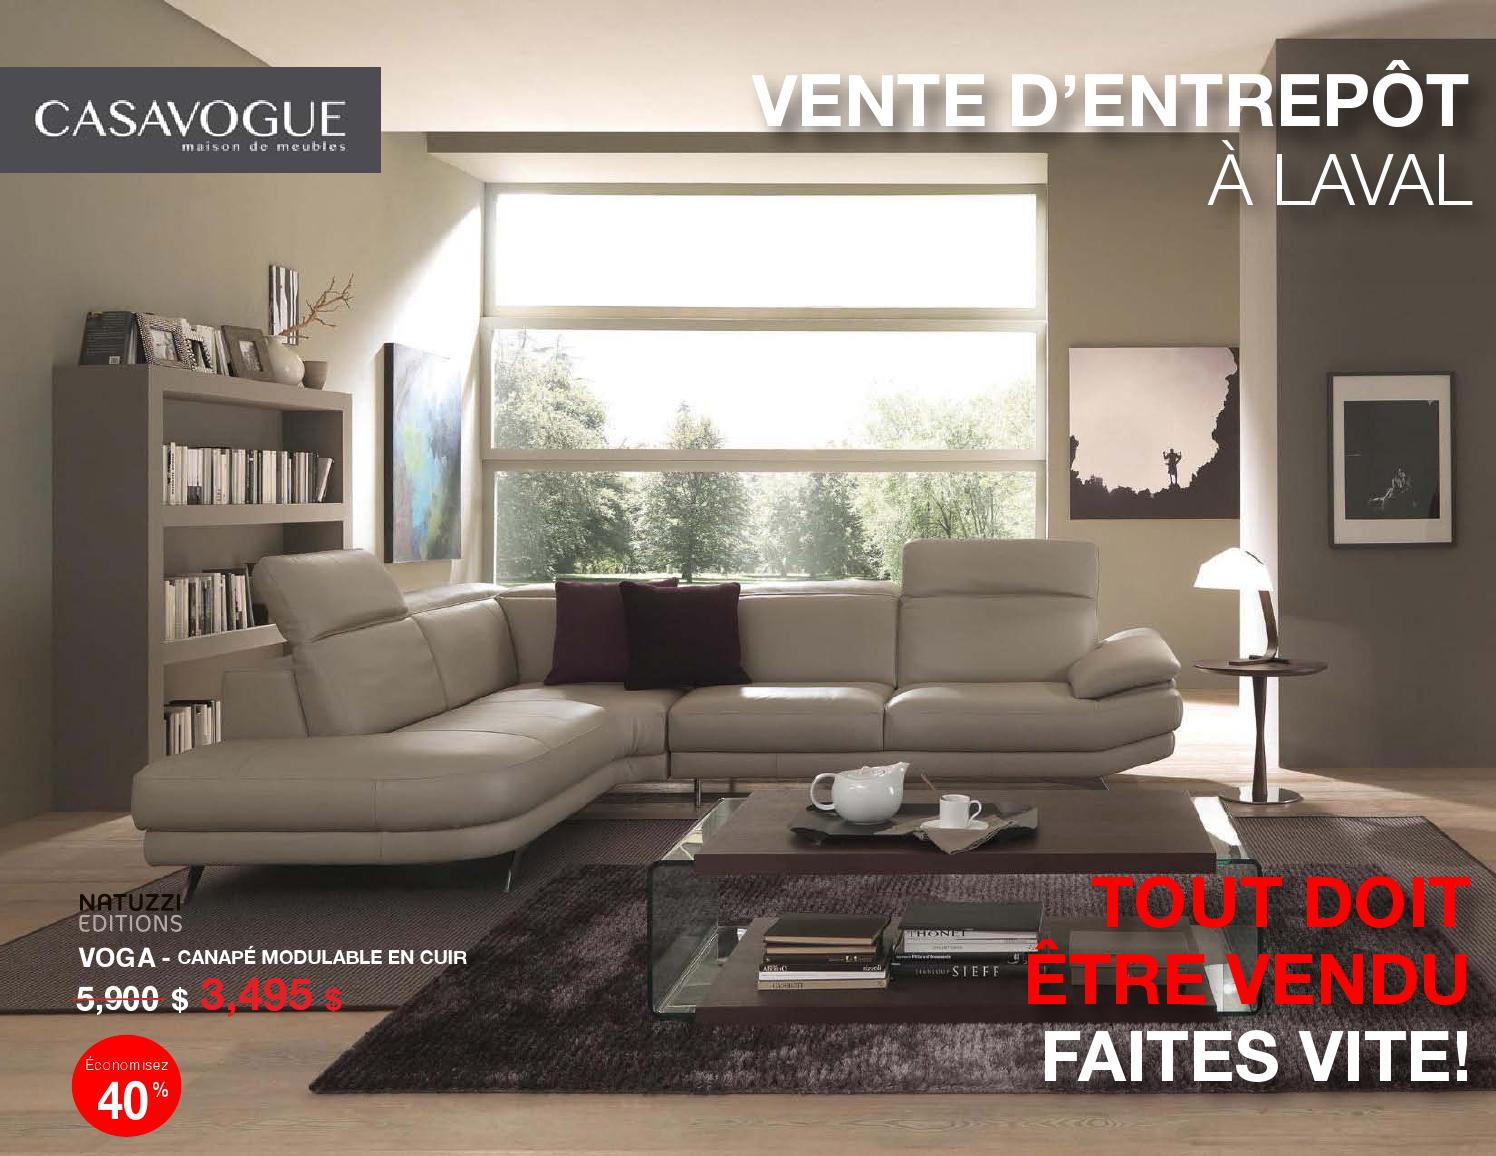 Ameublement casa vogue laval 20170727094428 for Entrepot de meuble montreal